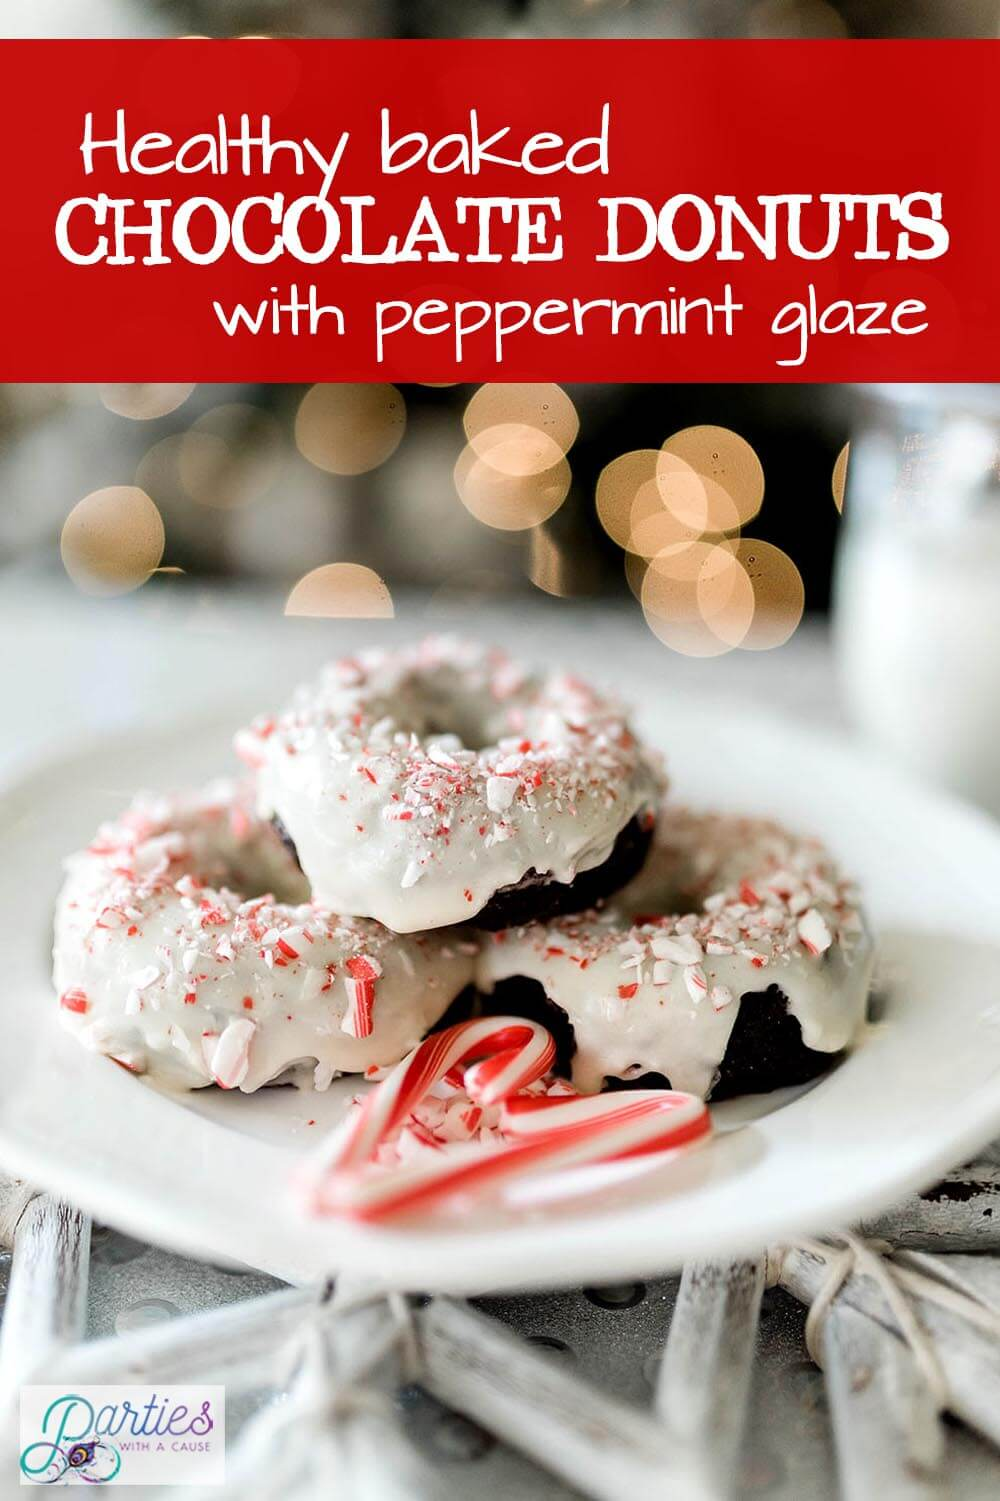 Healthy baked chocolate donuts with peppermint glaze